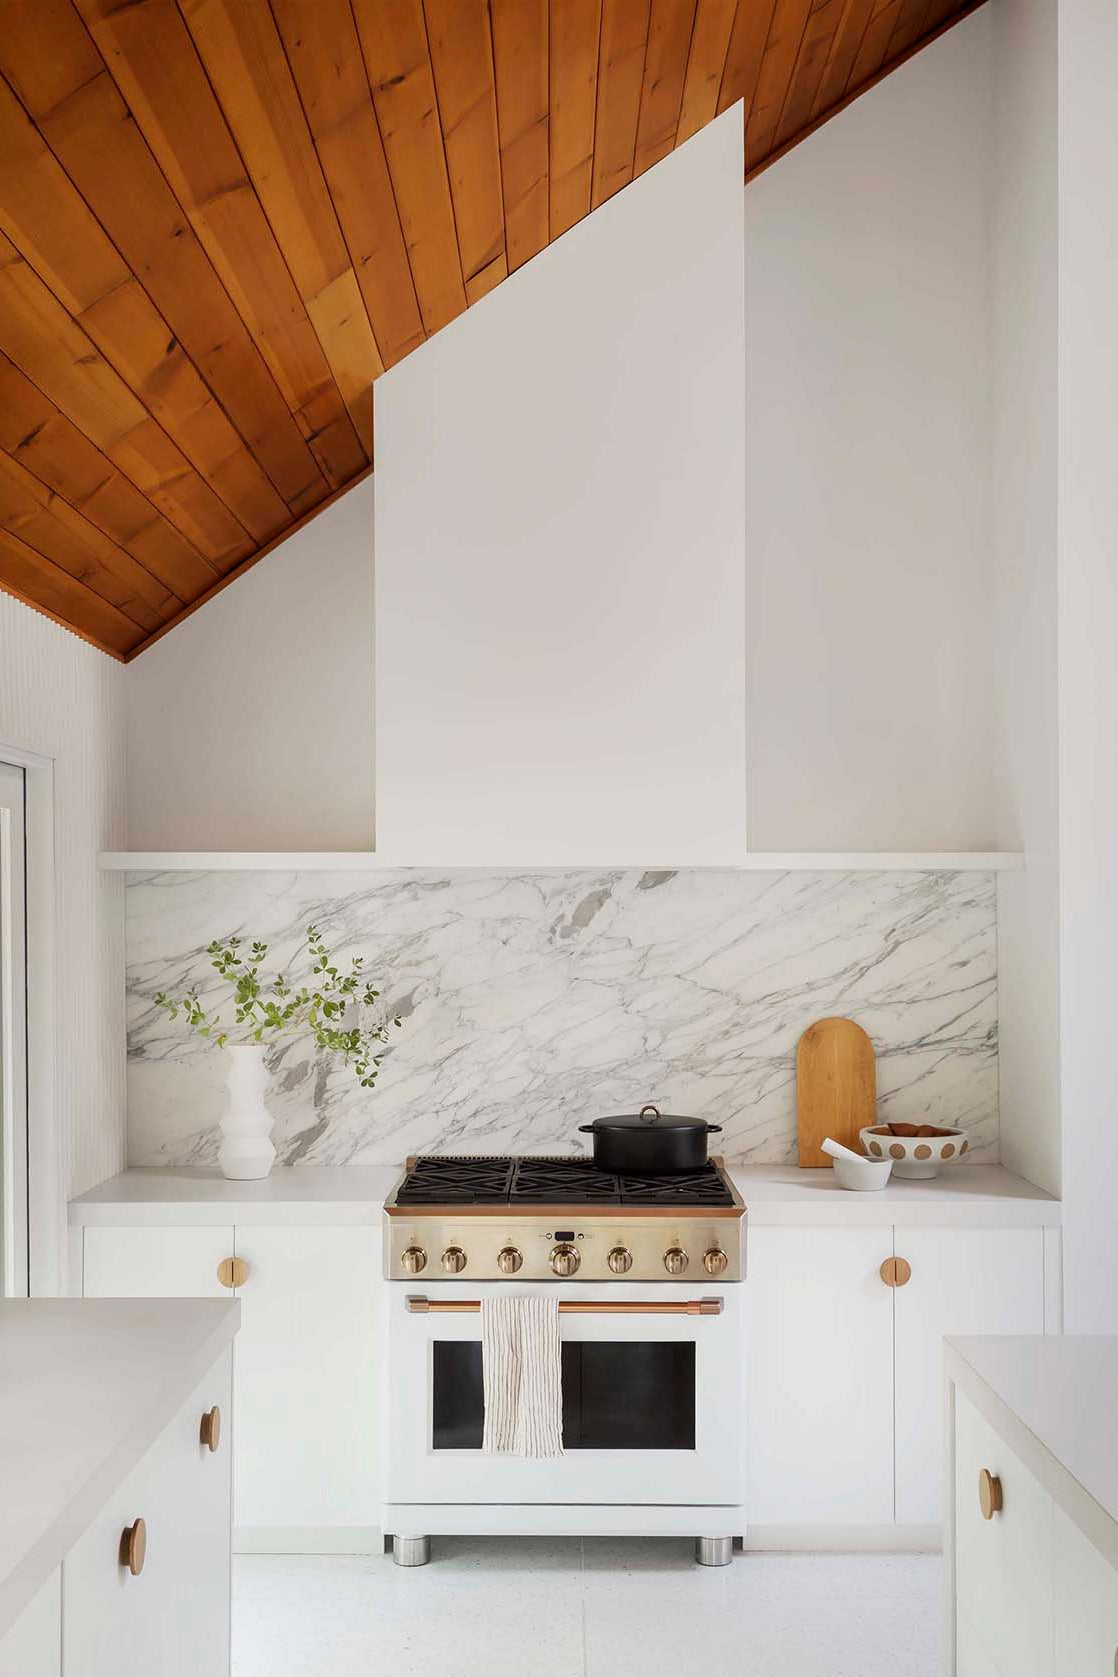 sloped wood ceiling over a stove